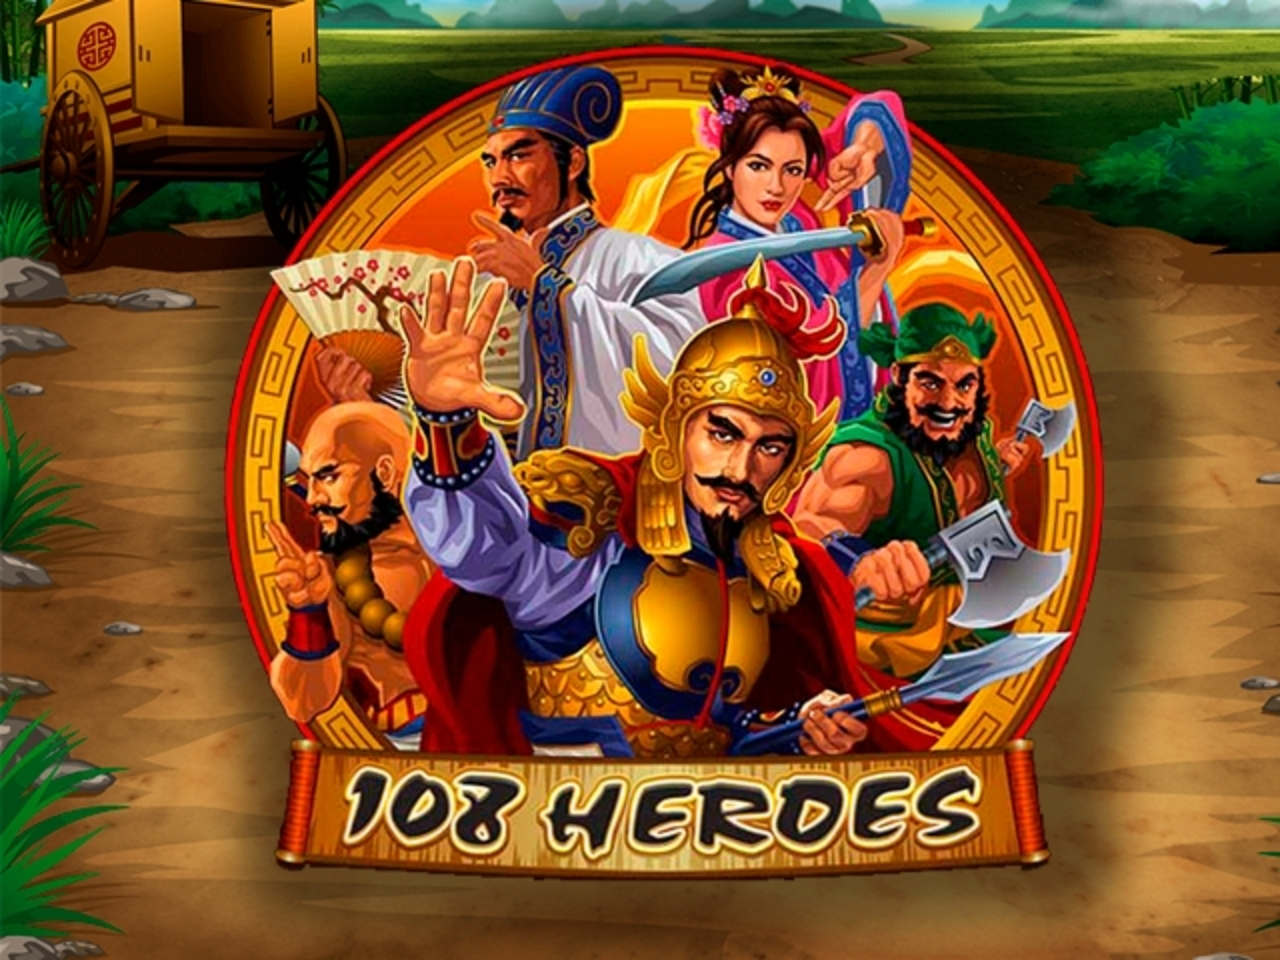 Se 108 Heroes Online Slot Demo Game, MahiGaming